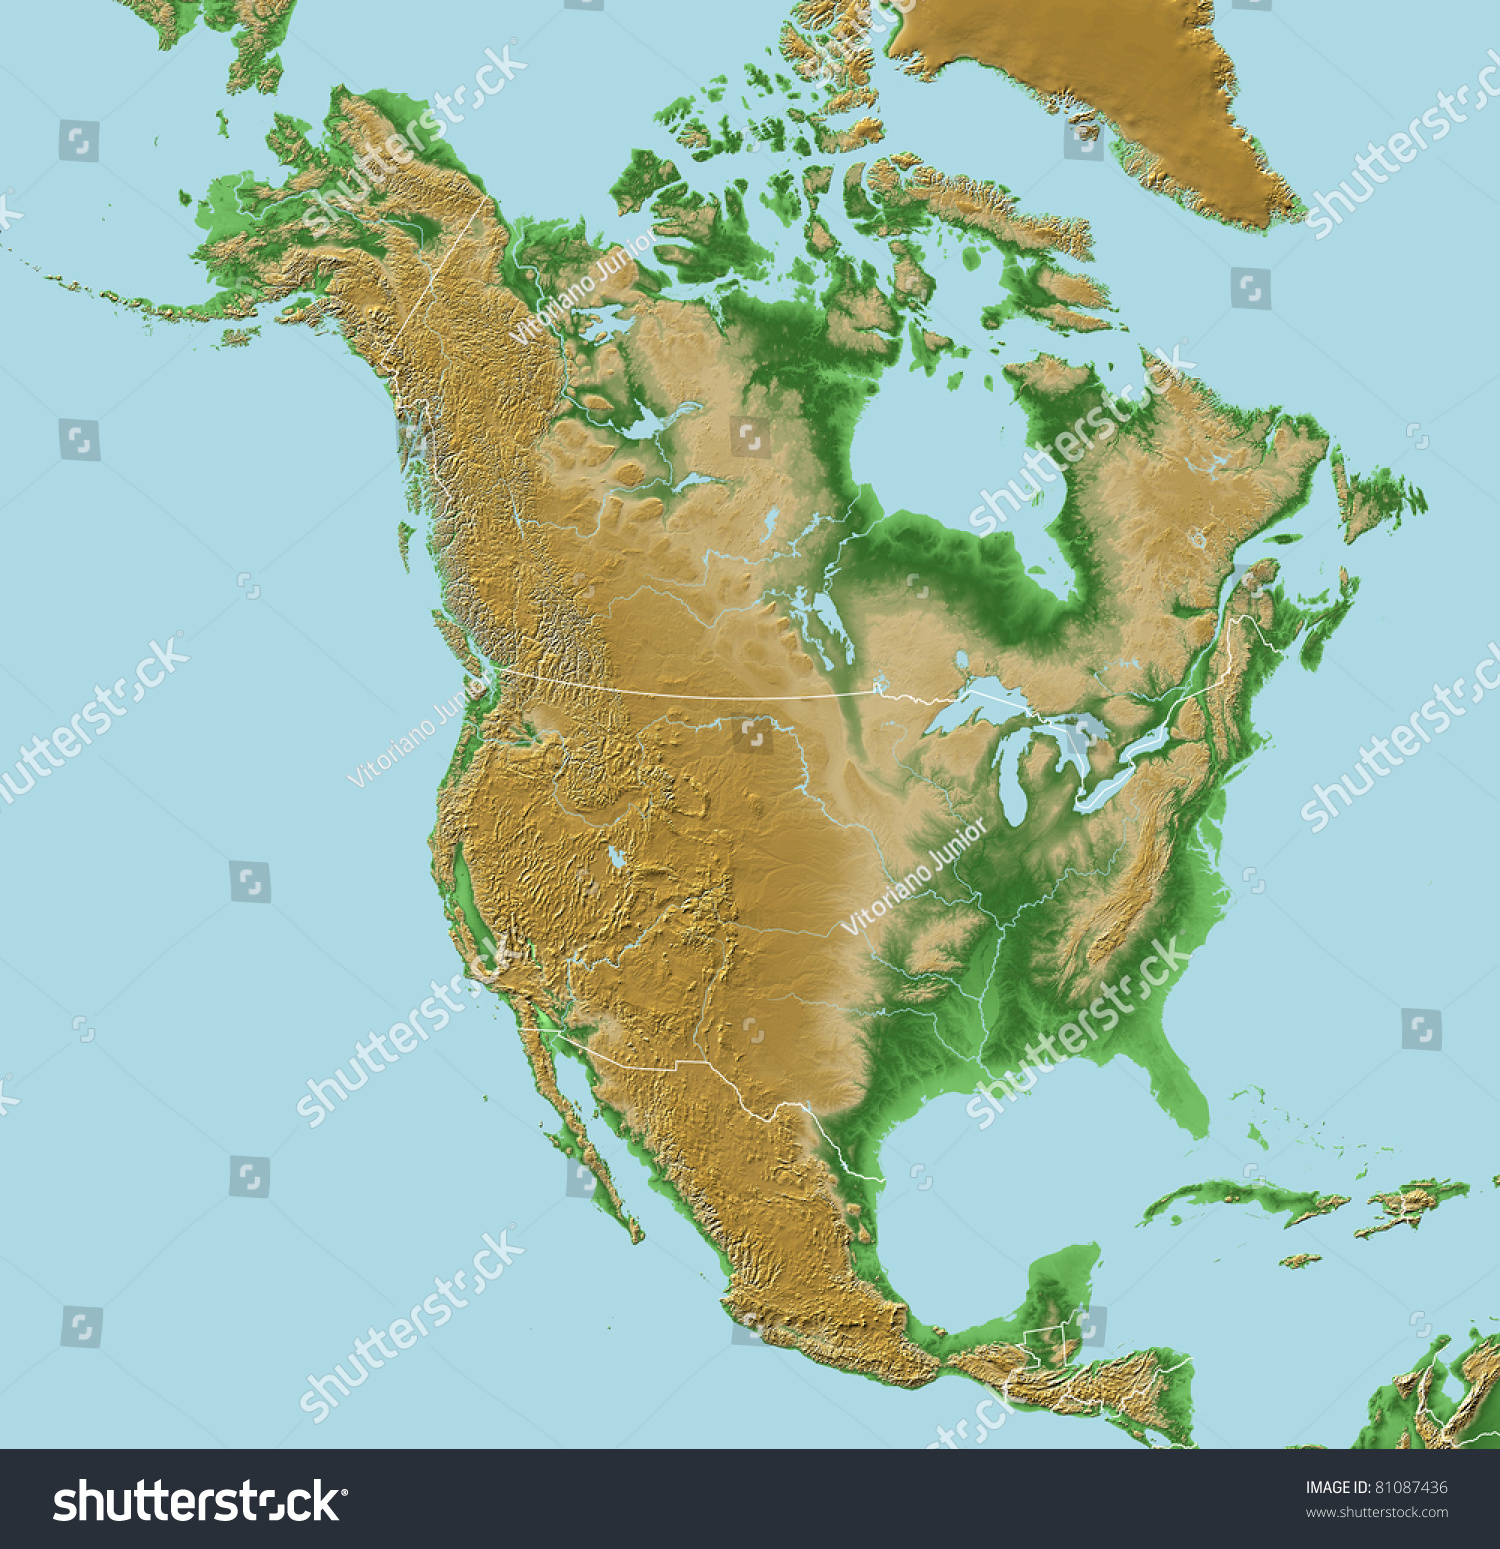 N Home Elevation Usa : Elevations north america map relief national stock